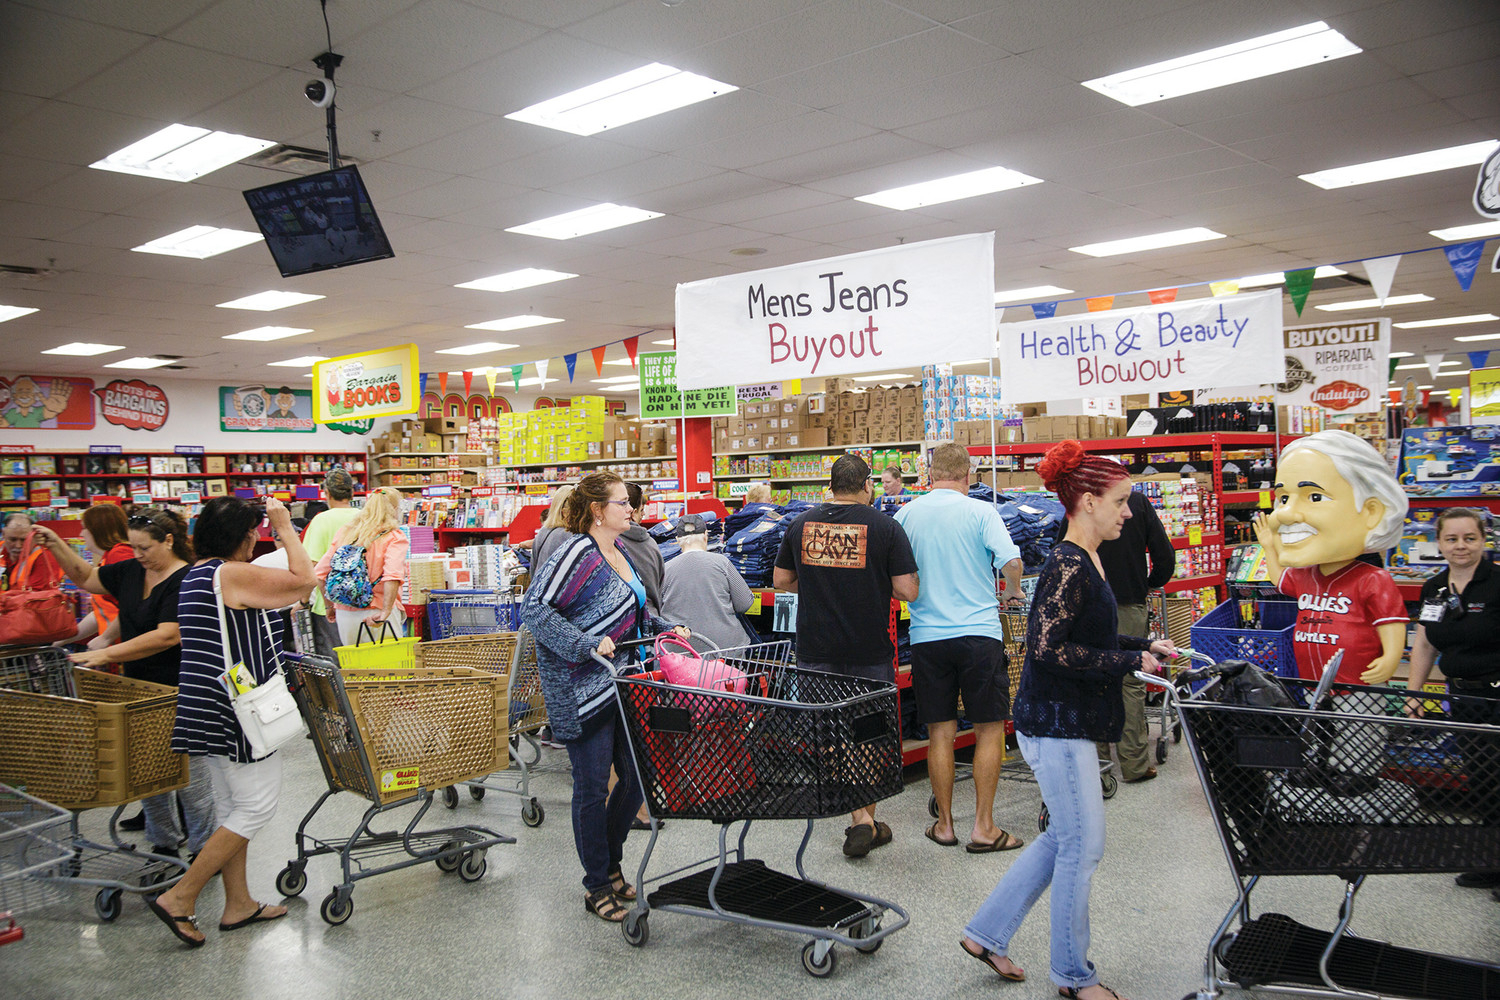 Customers flood into Ollie's Bargain Outlet Wednesday morning during the official grand opening. The store offers name brand items as discounted prices.